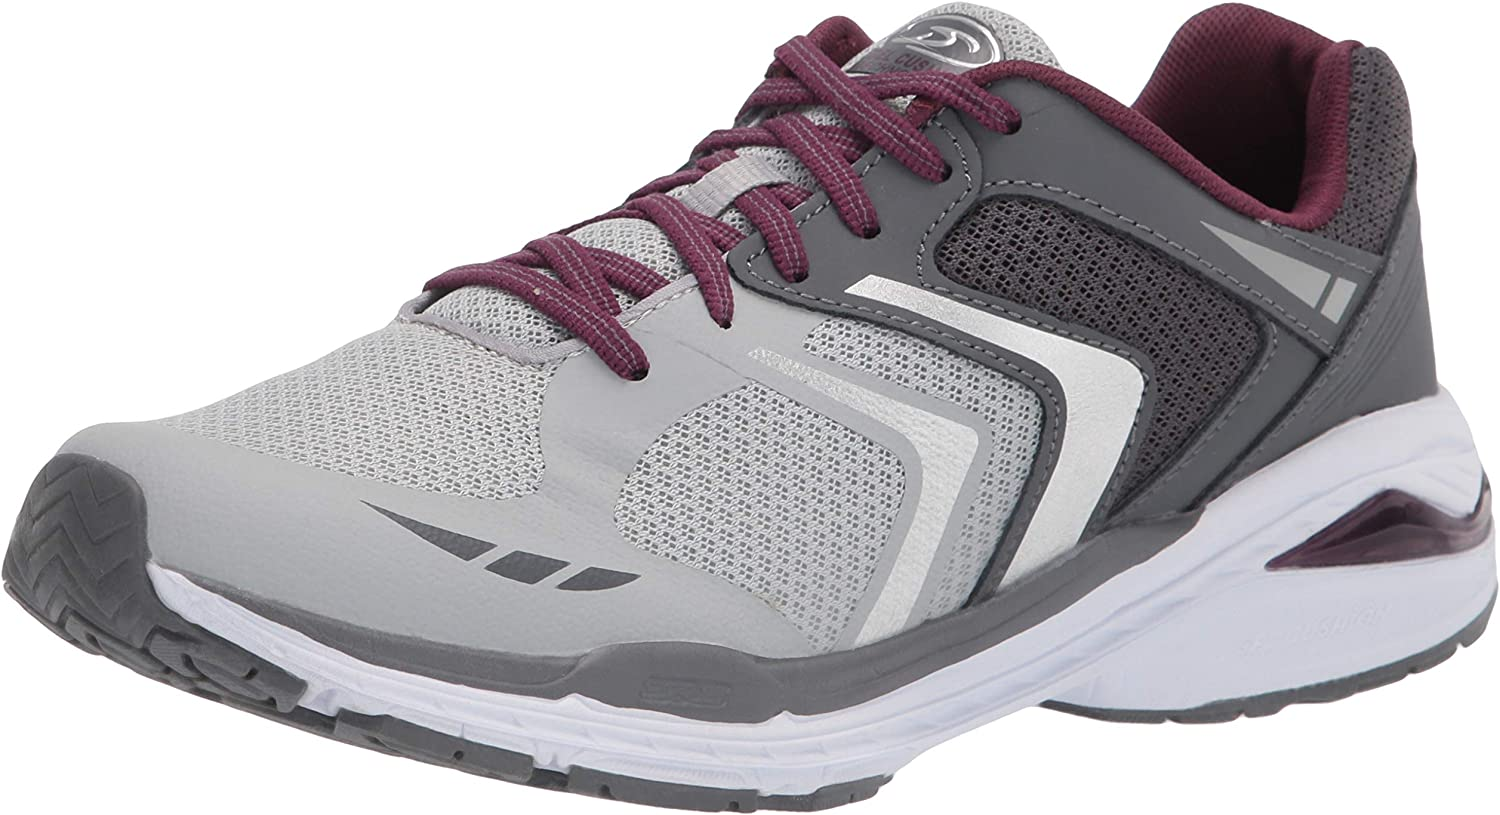 Dr. Scholl's Long-awaited Shoes Women's Sneaker Limited time for free shipping Fashion Blitz